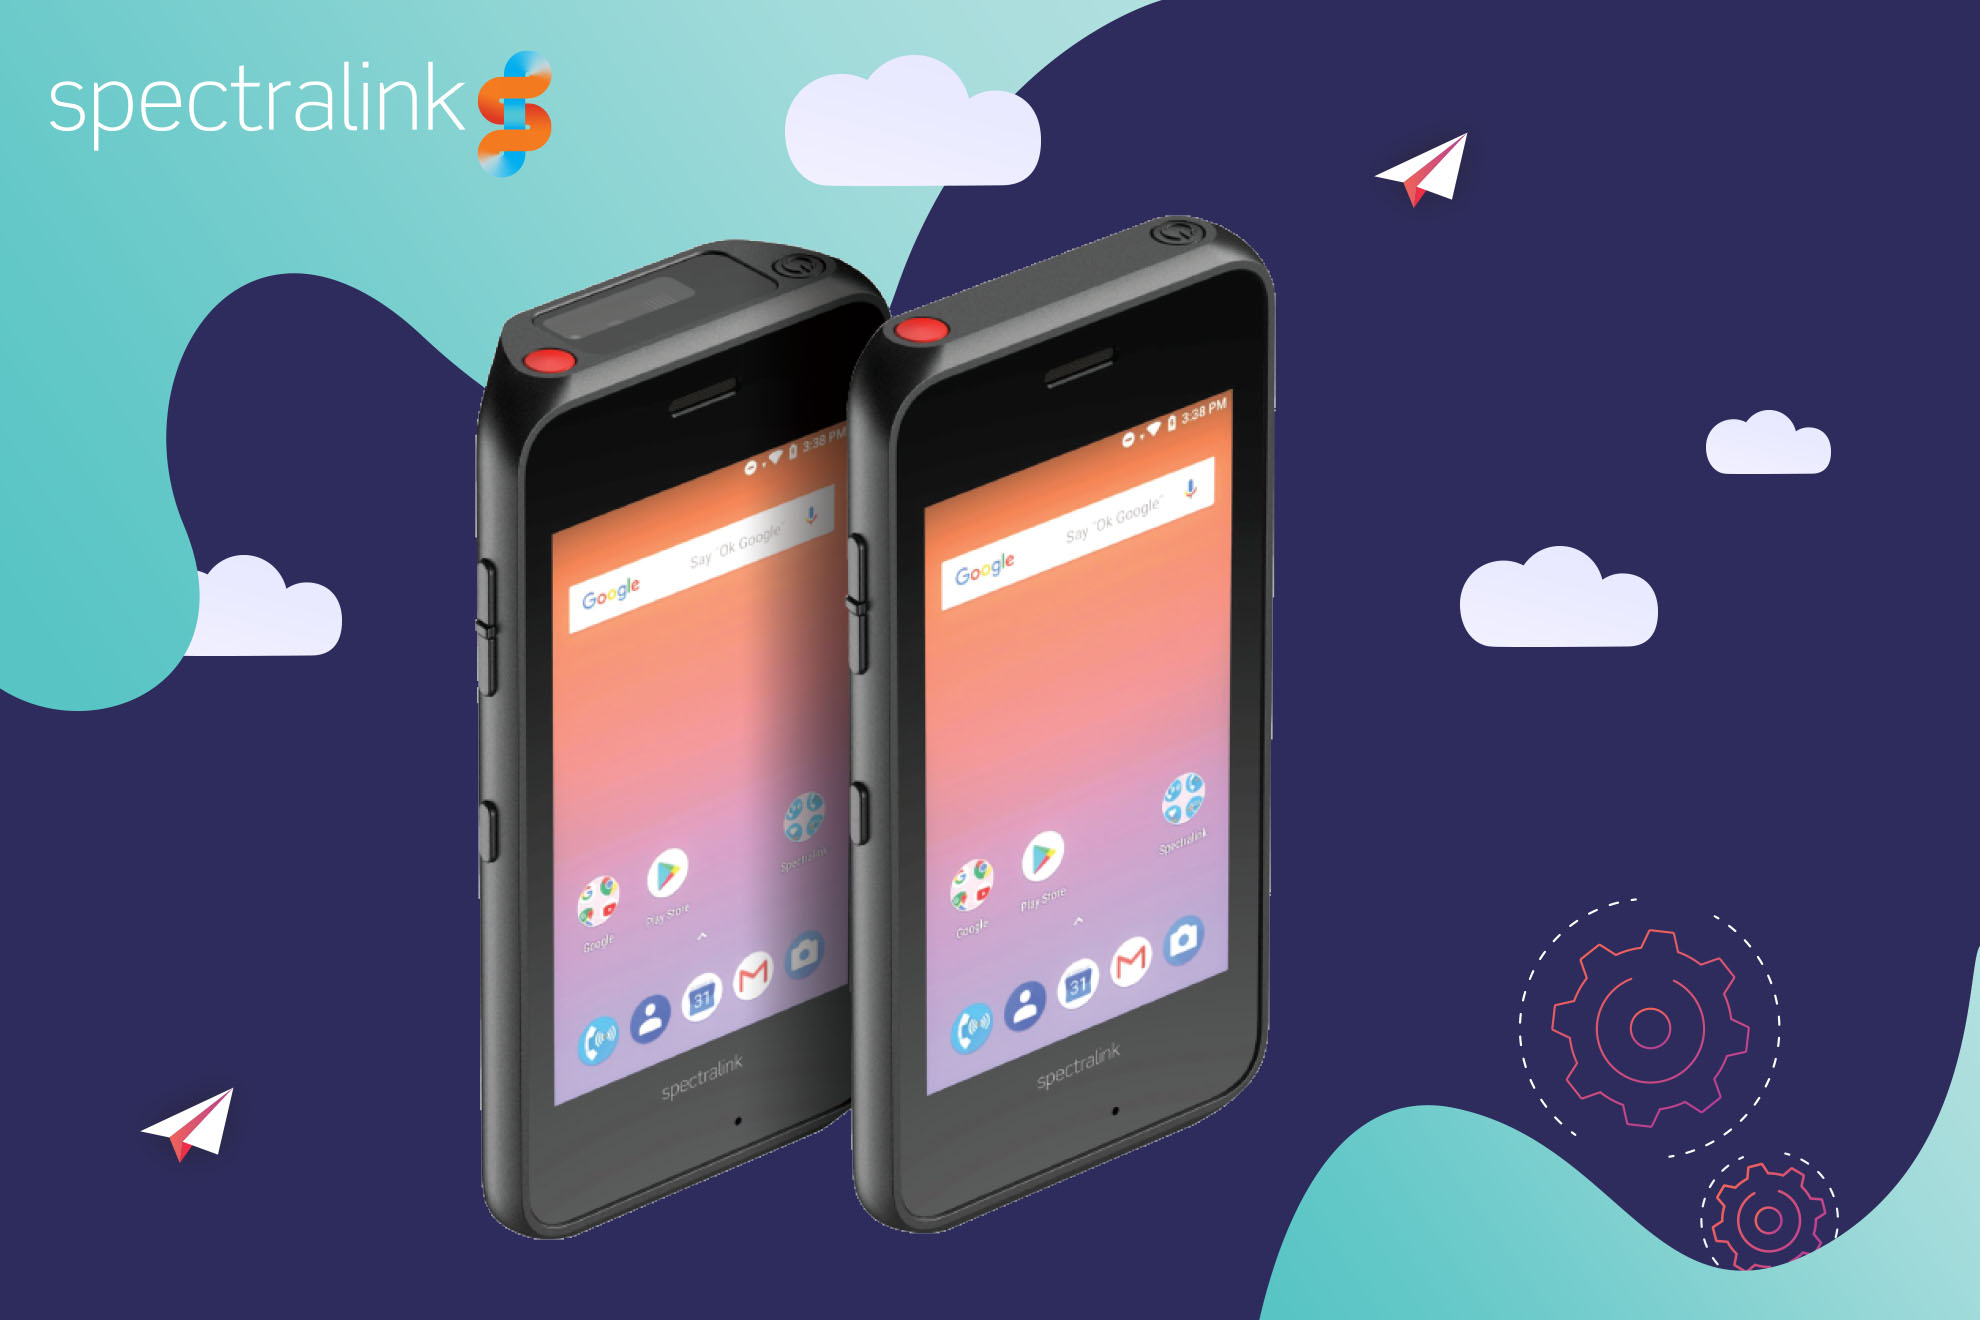 Spectralink introduces the Versity 92 Series Android smartphone